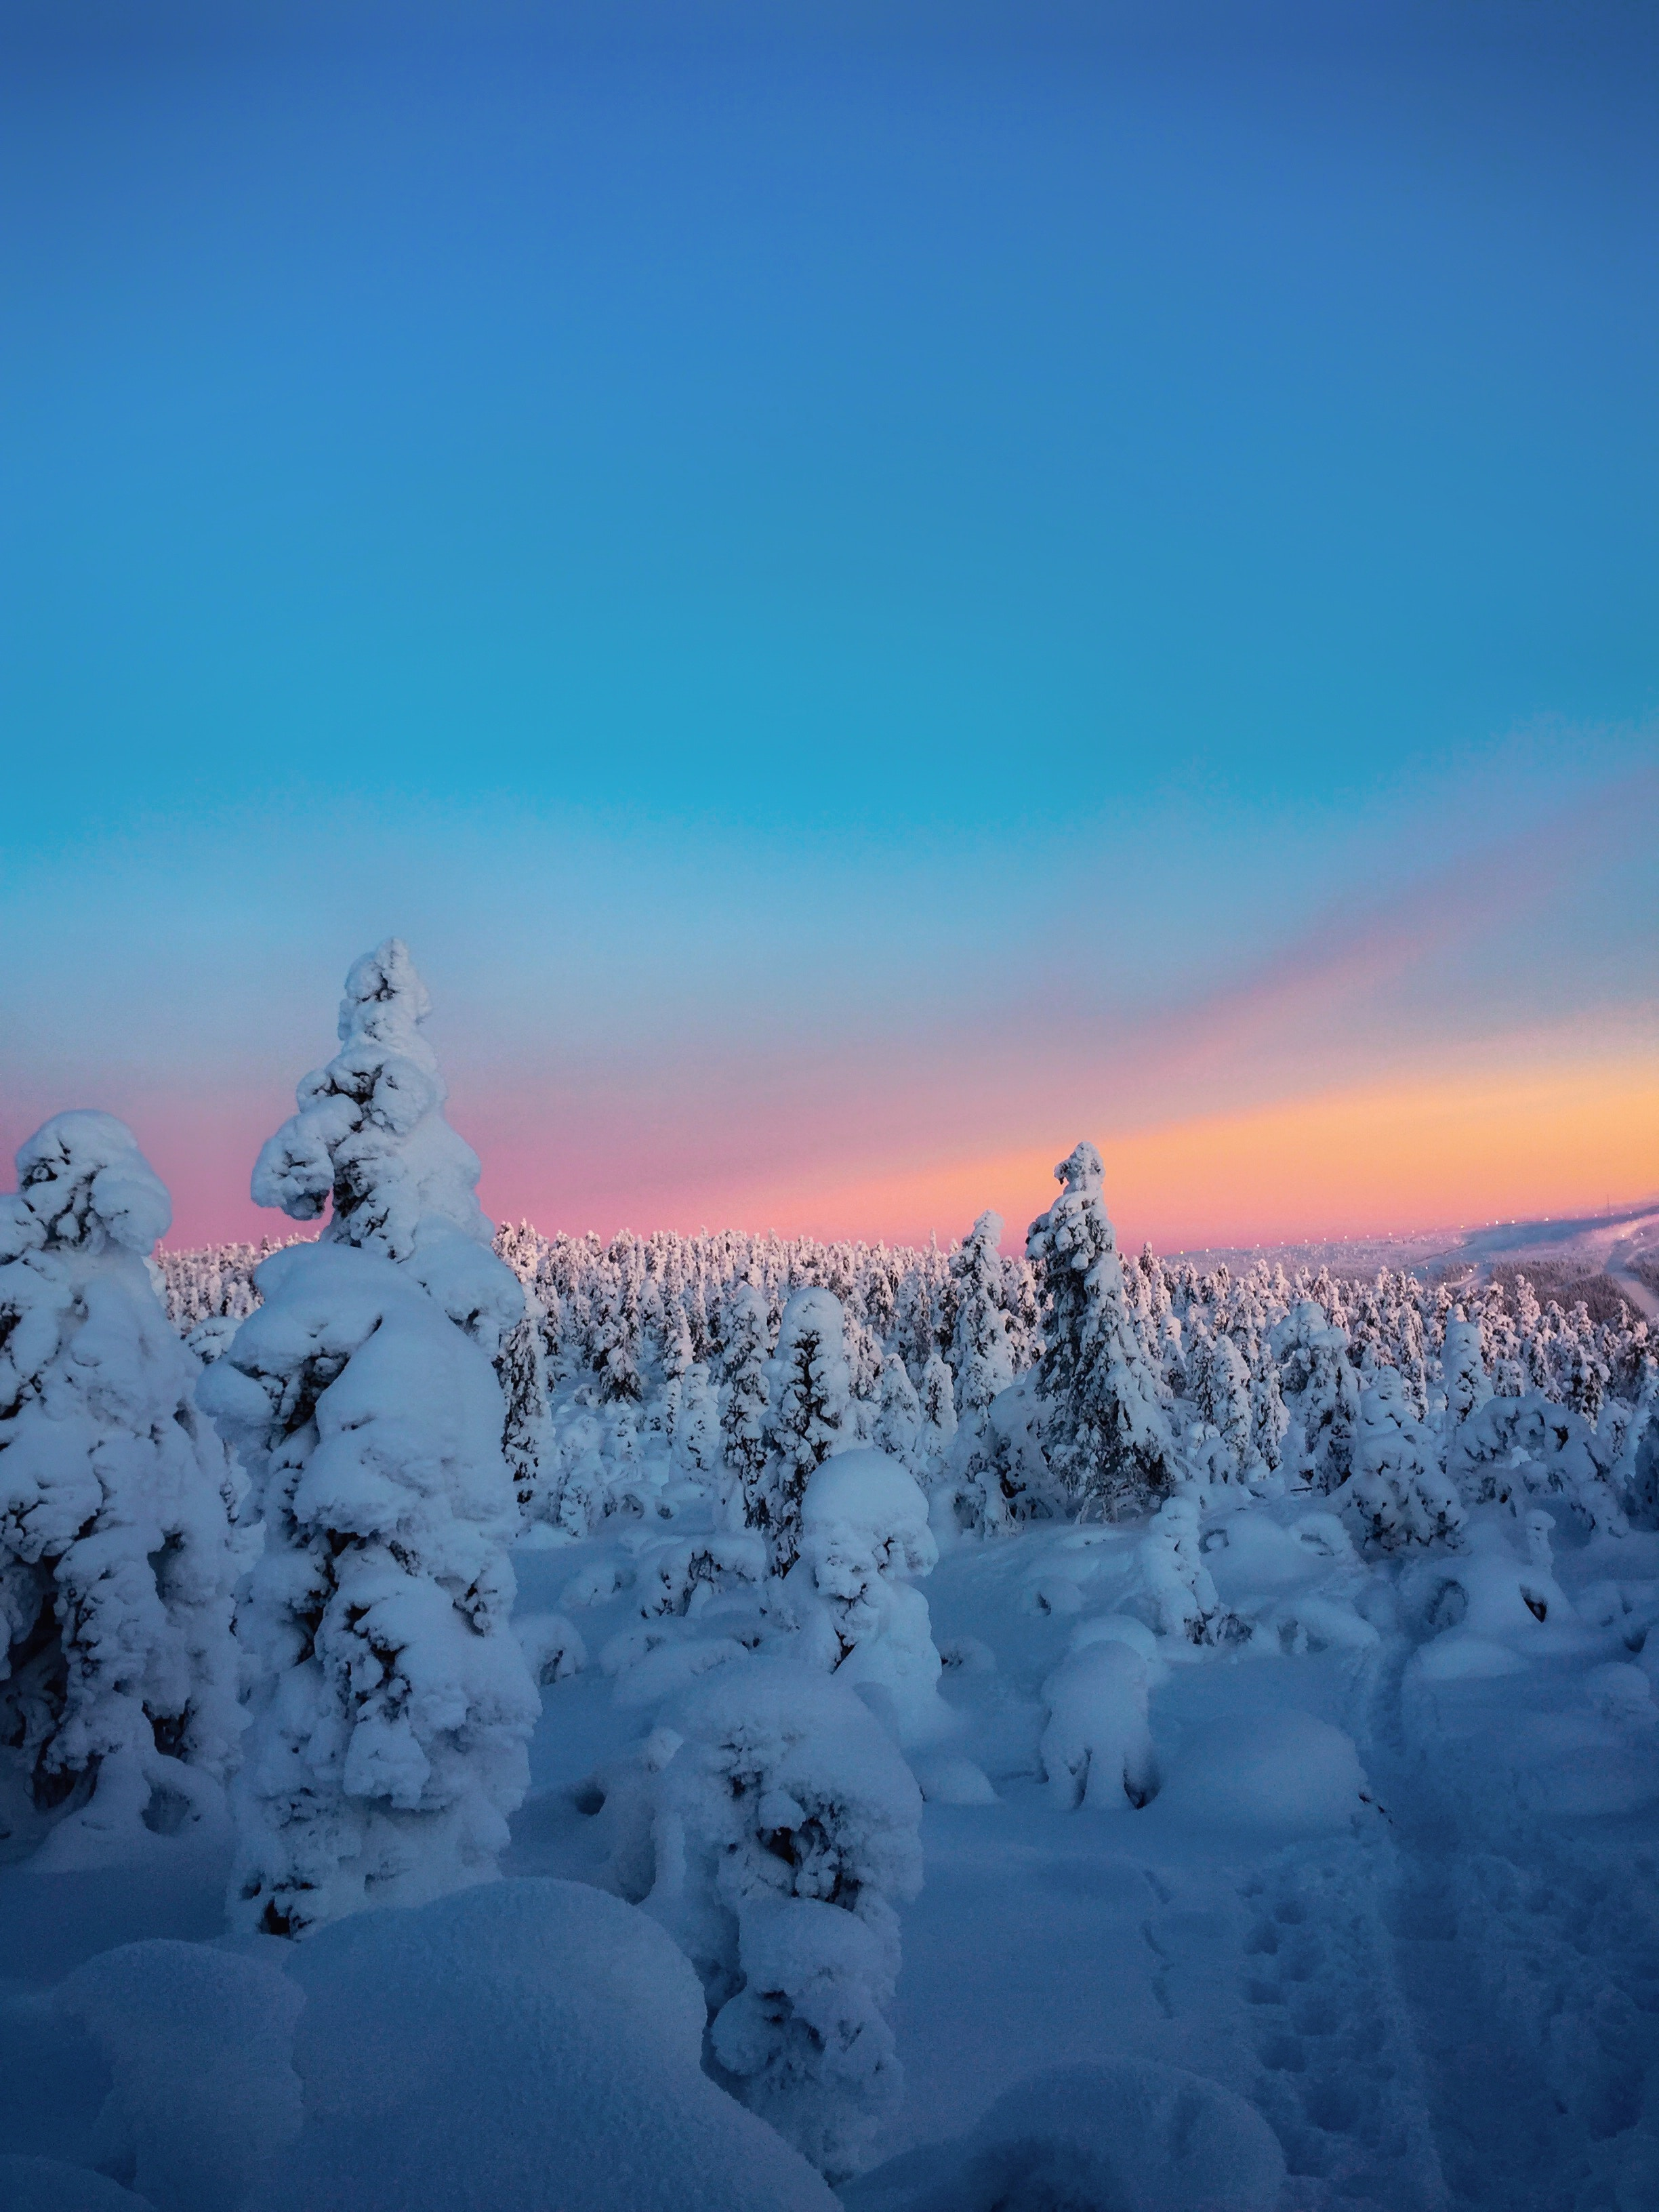 115905 download wallpaper Nature, Winter, Trees, Snow, Horizon, Snow Covered, Snowbound screensavers and pictures for free